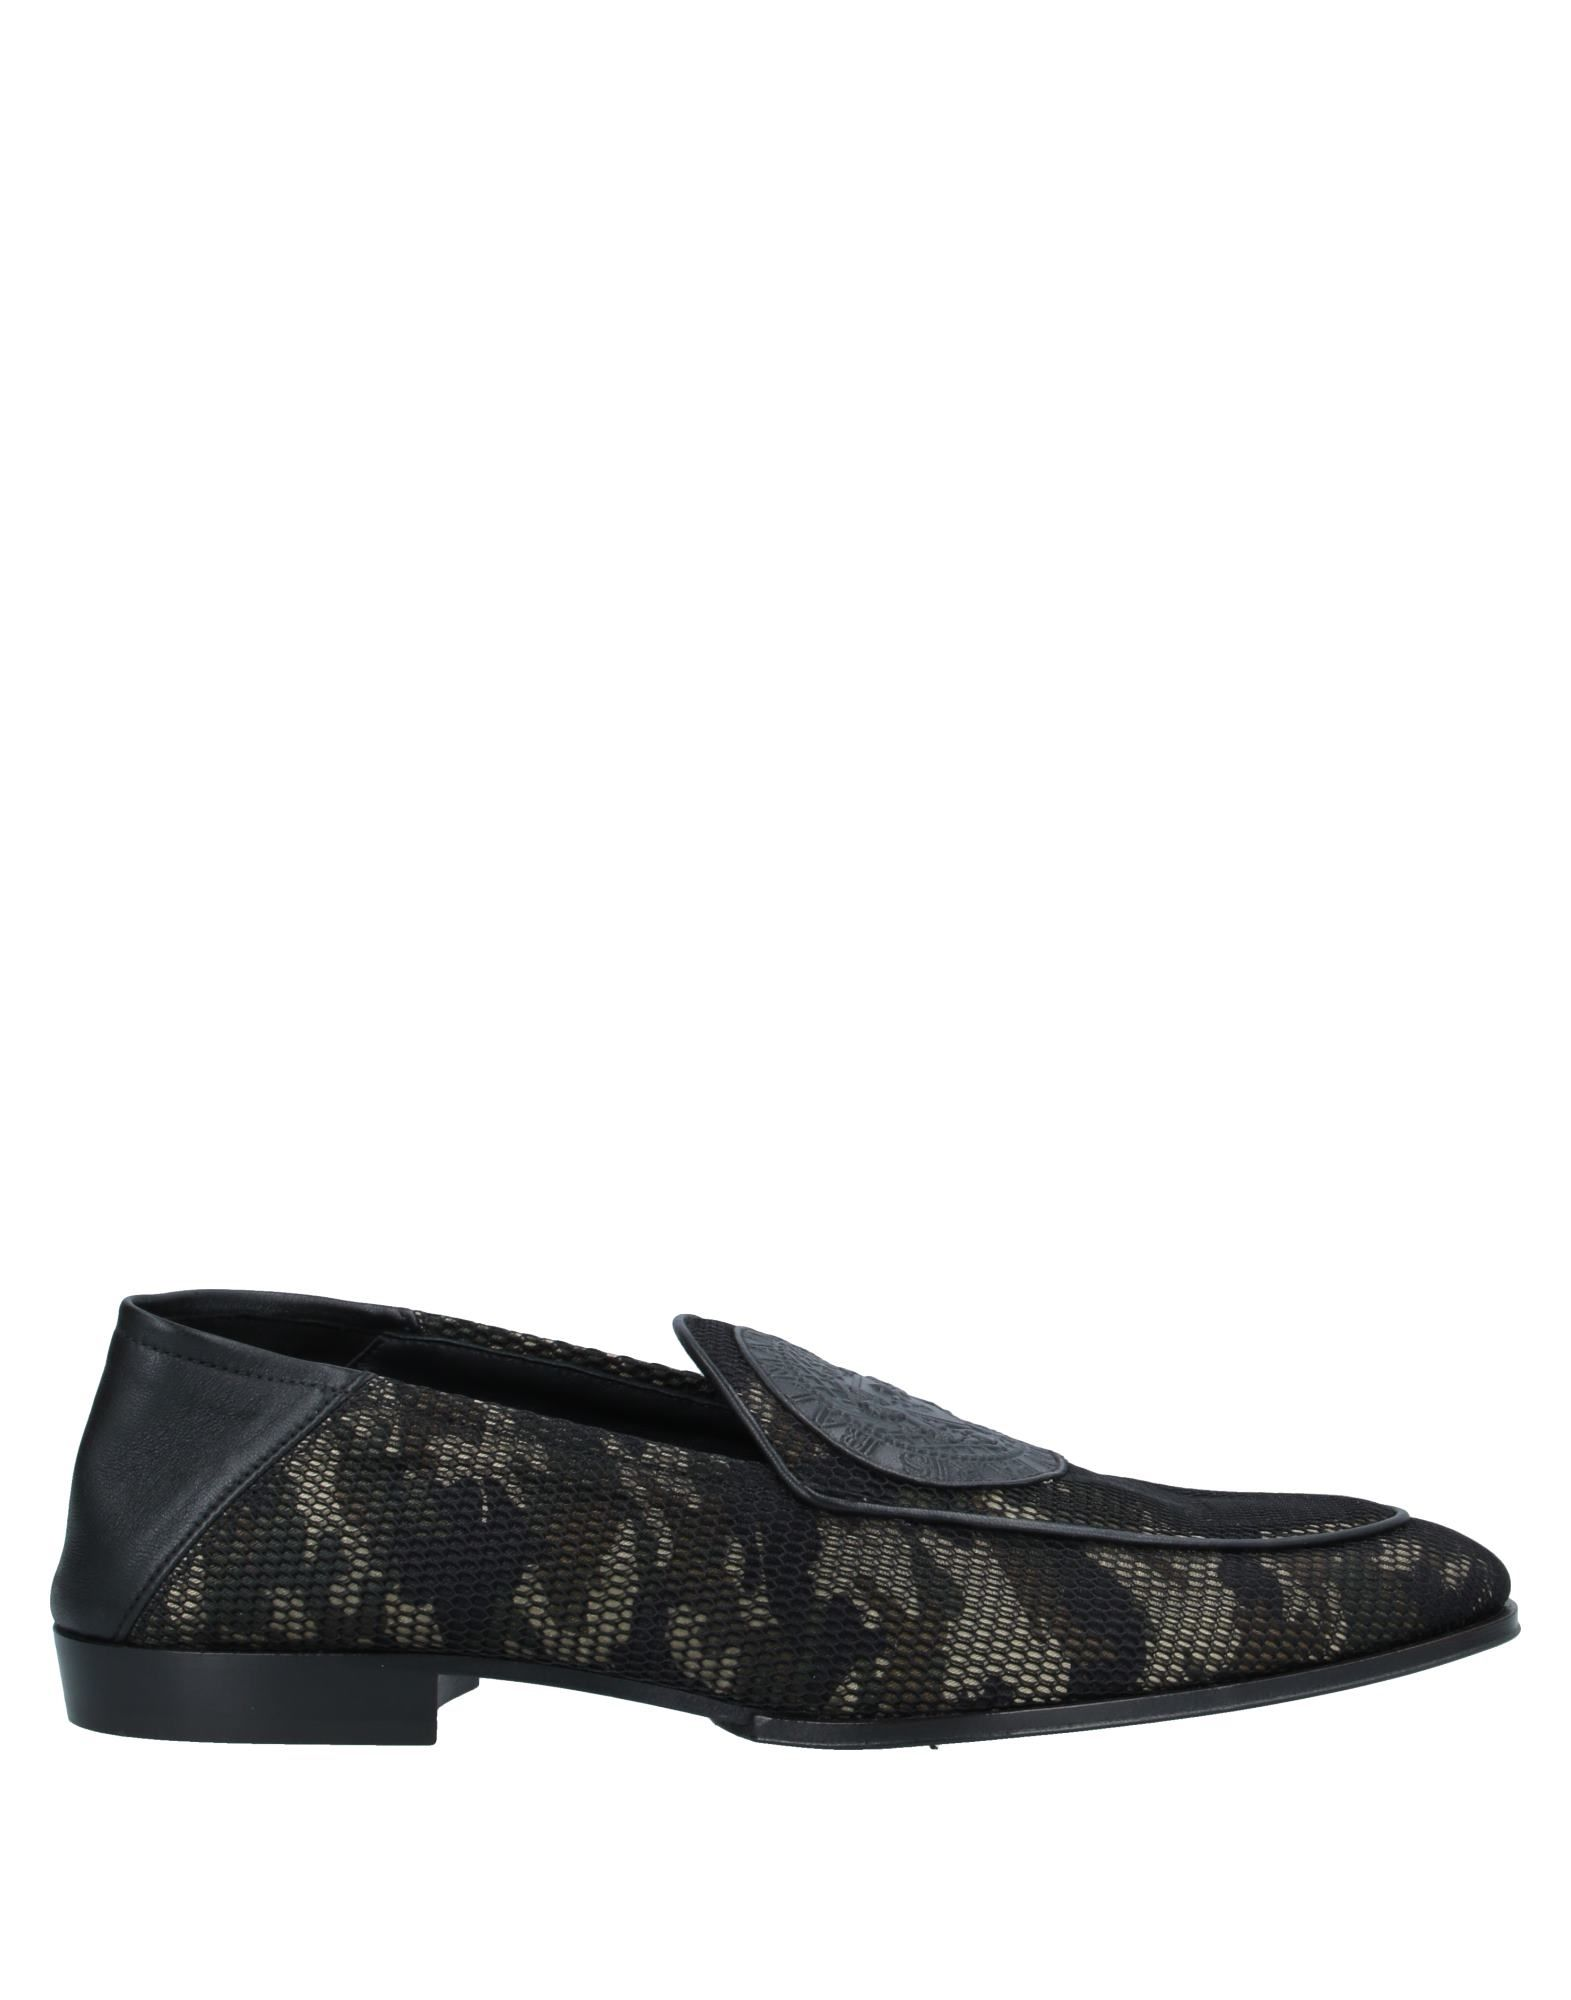 BALMAIN Loafers. contrasting applications, logo, camouflage, round toeline, flat, leather lining, leather sole, contains non-textile parts of animal origin, small sized. Textile fibers